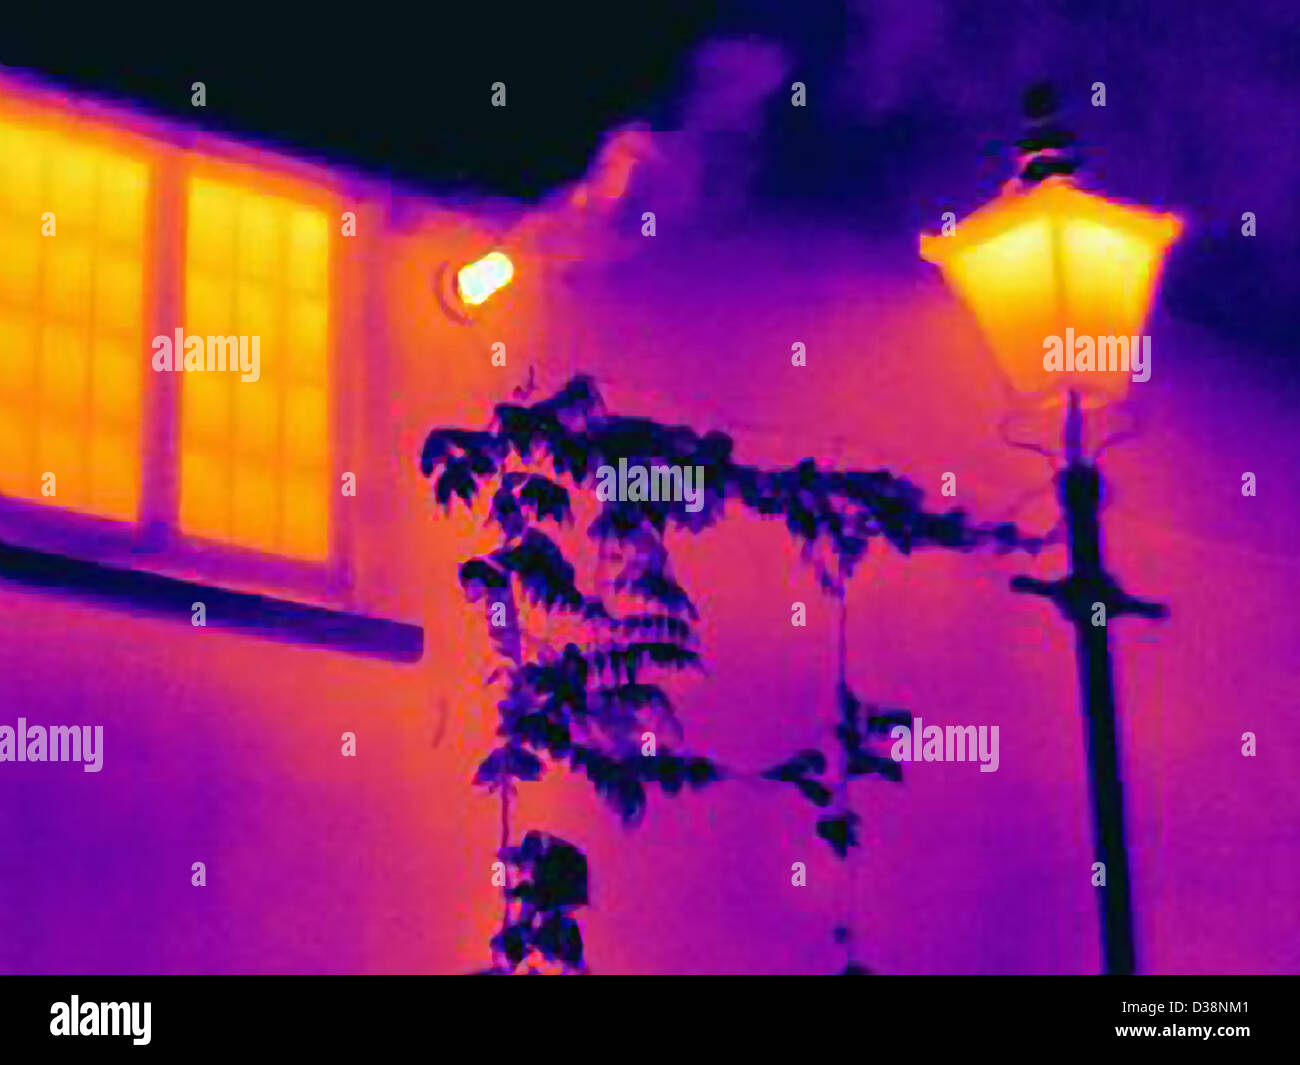 Thermal image of streetlight and window - Stock Image